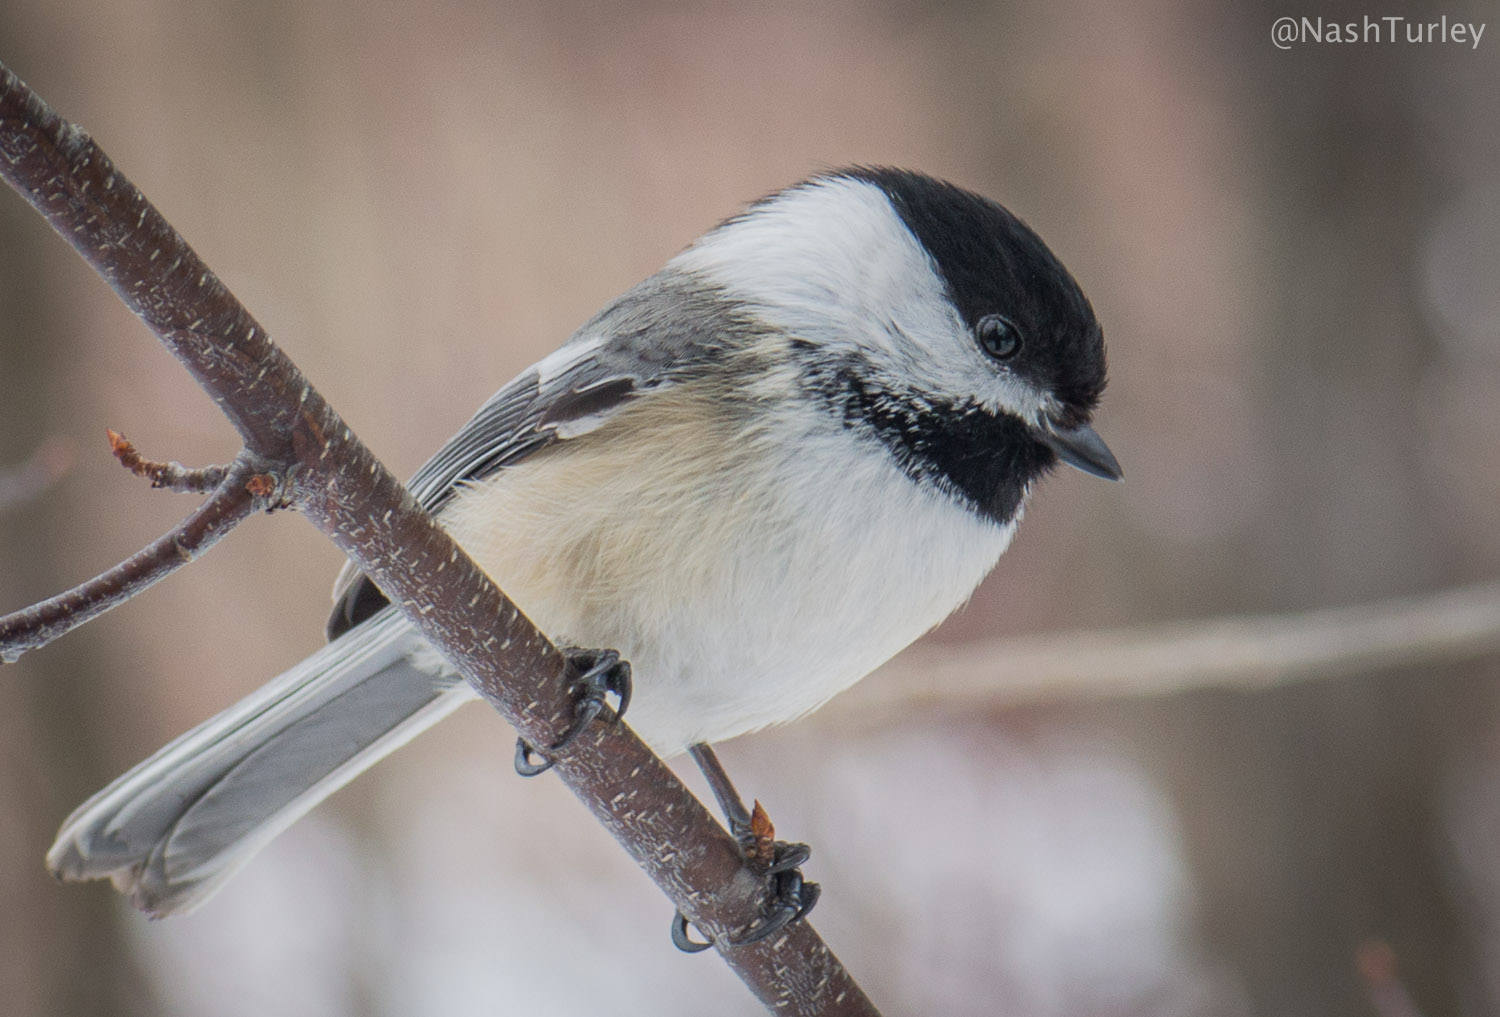 ontario southern woodpeckers signs spring beauty cute humans background whited distracting washed shot